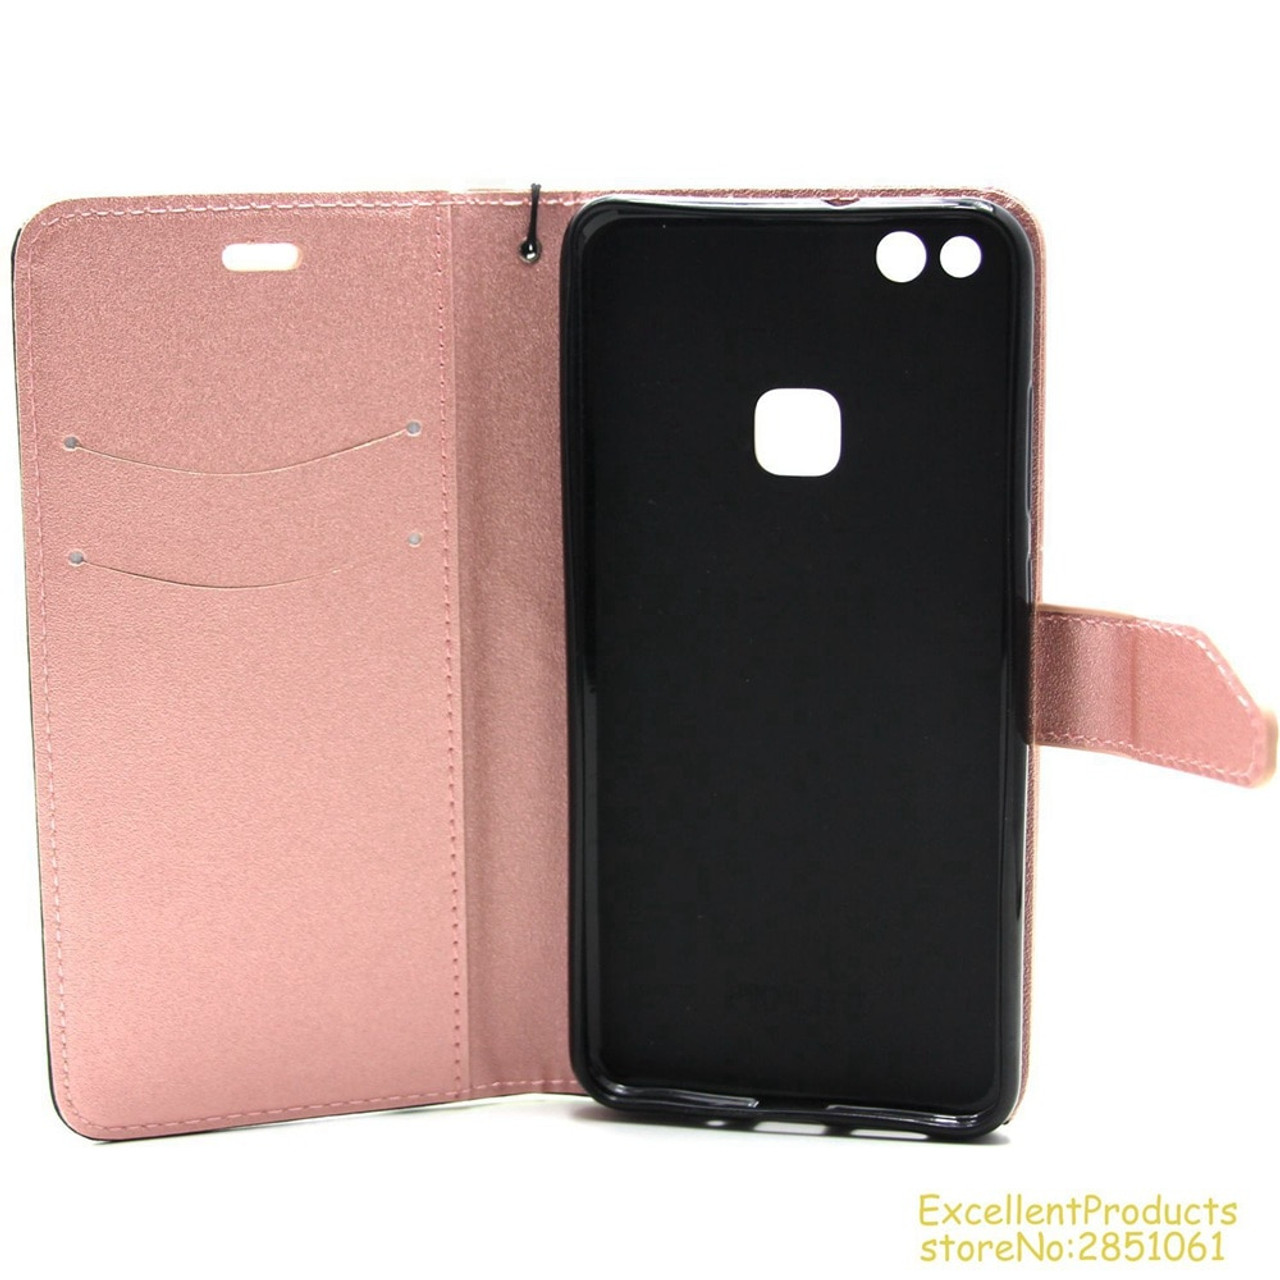 separation shoes 5a738 293e0 10 styles Leather Wallet Case For Huawei P10 LITE Flip Cover Case With Card  Slot For Huawei P10 LITE Leather Phone Cases